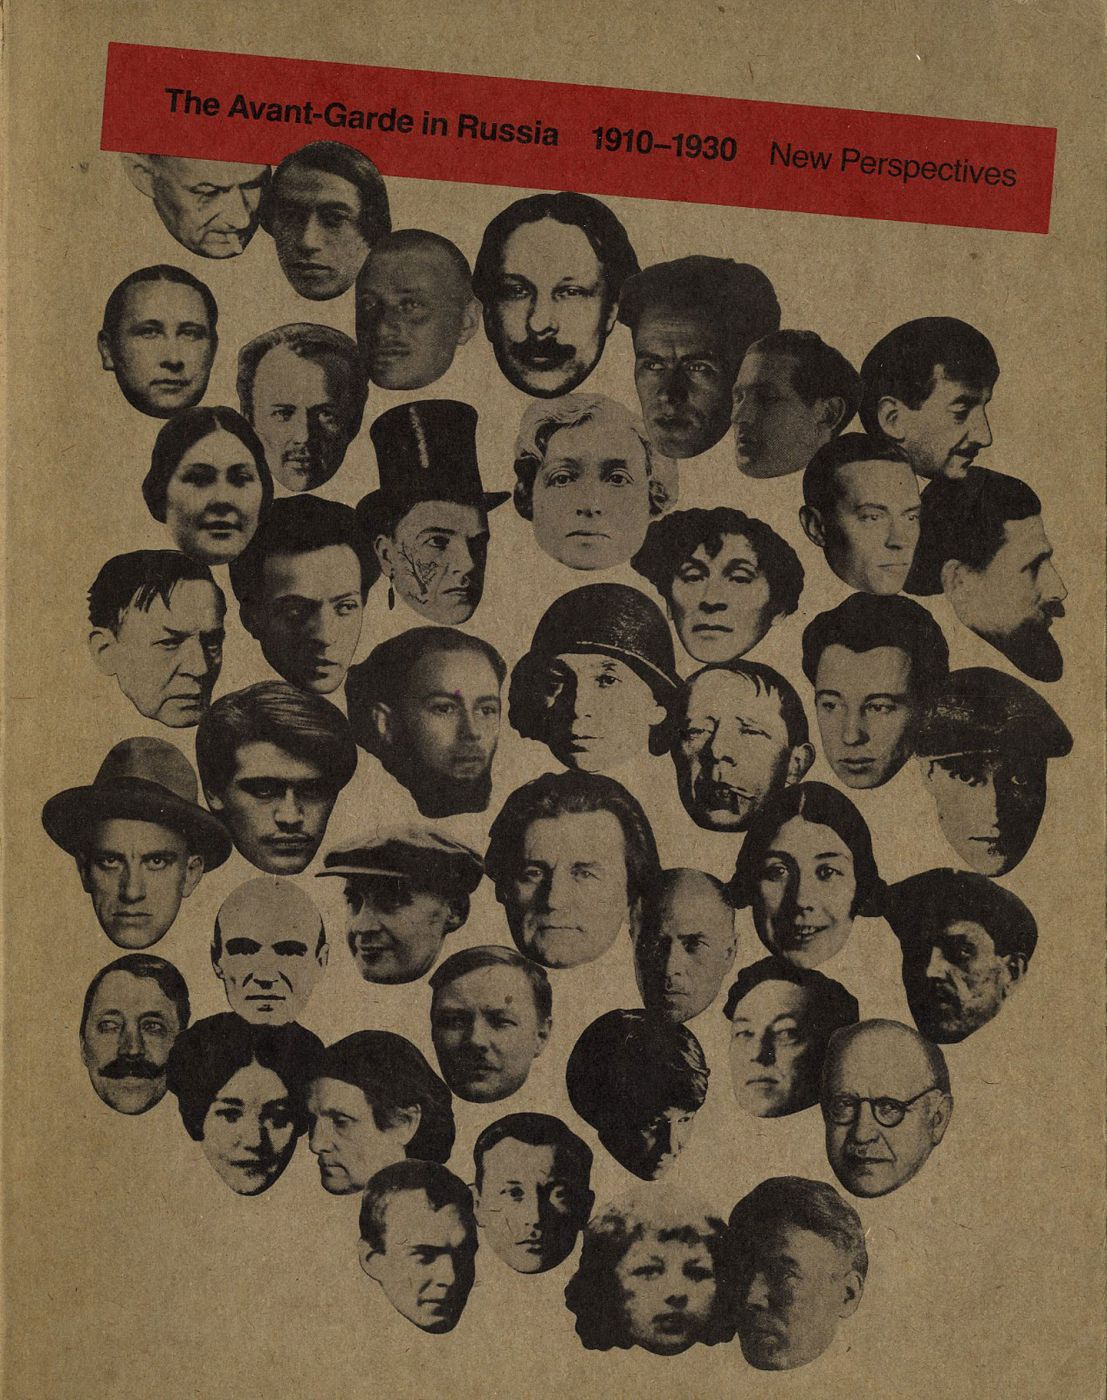 The Avant-Garde in Russia, 1910-1930: New Perspectives [ASSOCIATION COPY]